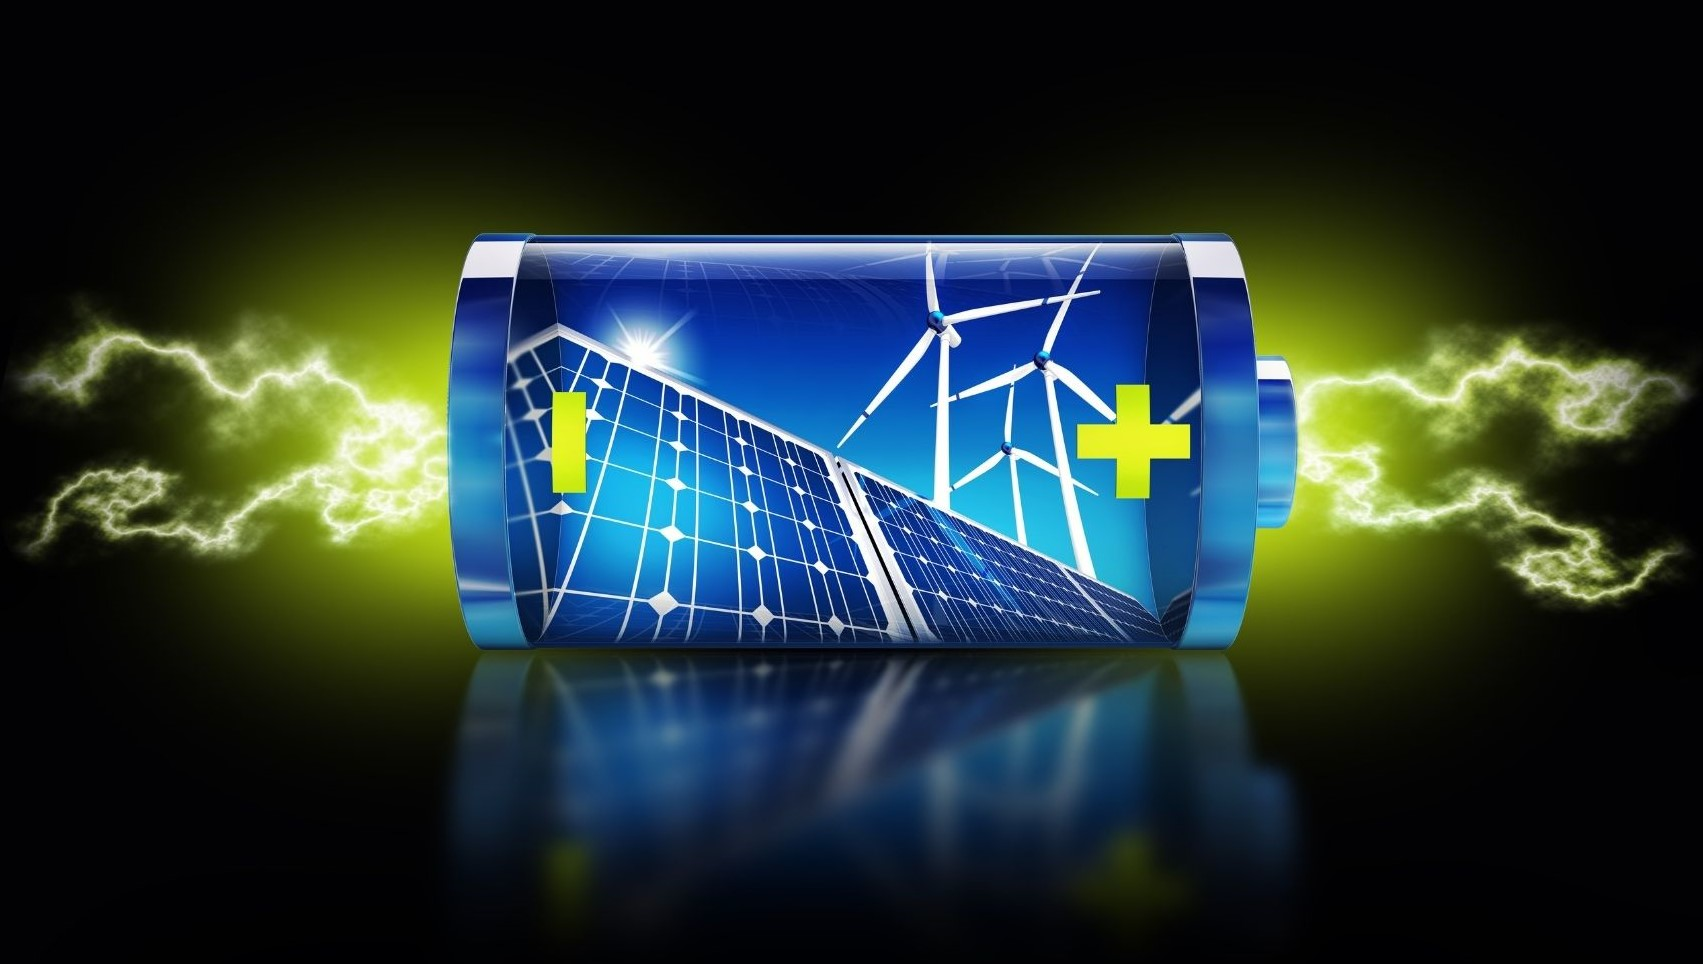 Battery Trends in EVs and the Minerals Behind Them